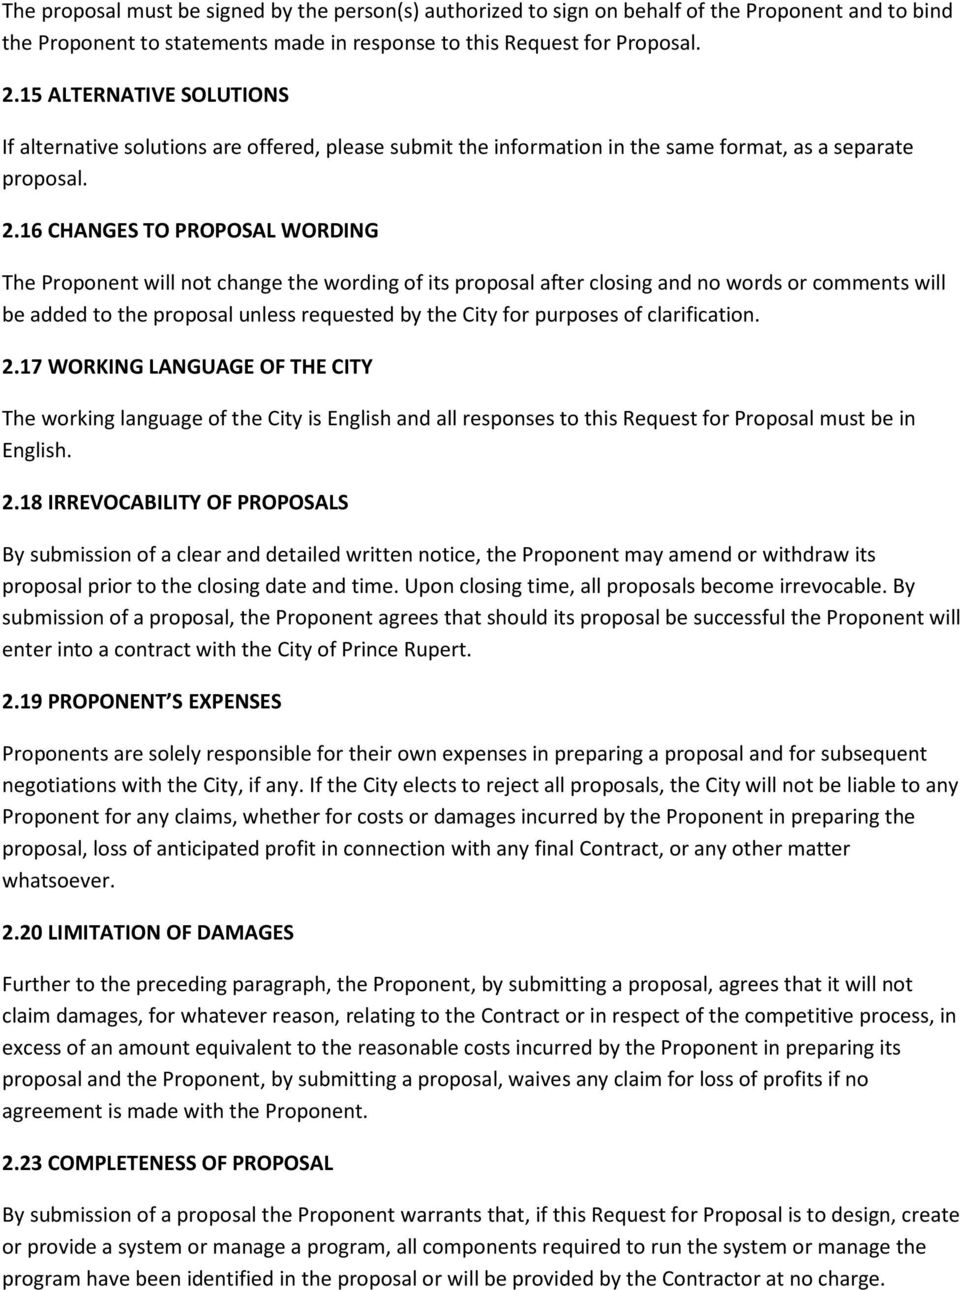 16 CHANGES TO PROPOSAL WORDING The Proponent will not change the wording of its proposal after closing and no words or comments will be added to the proposal unless requested by the City for purposes